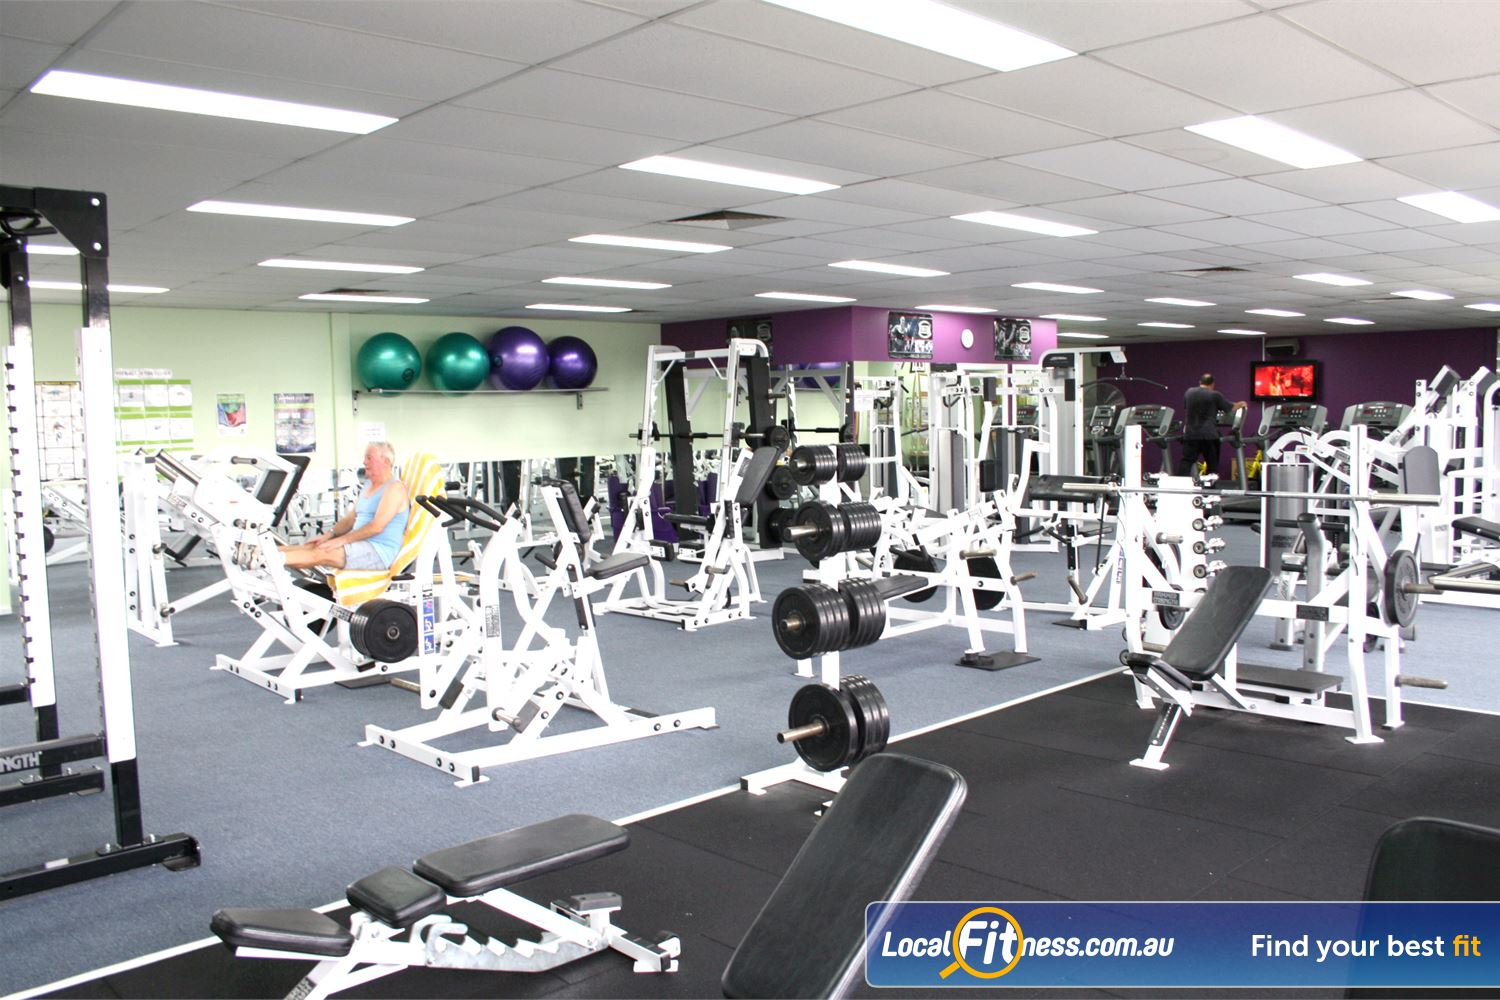 Berry Fitness Centre Edithvale Our 2 level Edithvale gym is one of the largest on the Bayside.